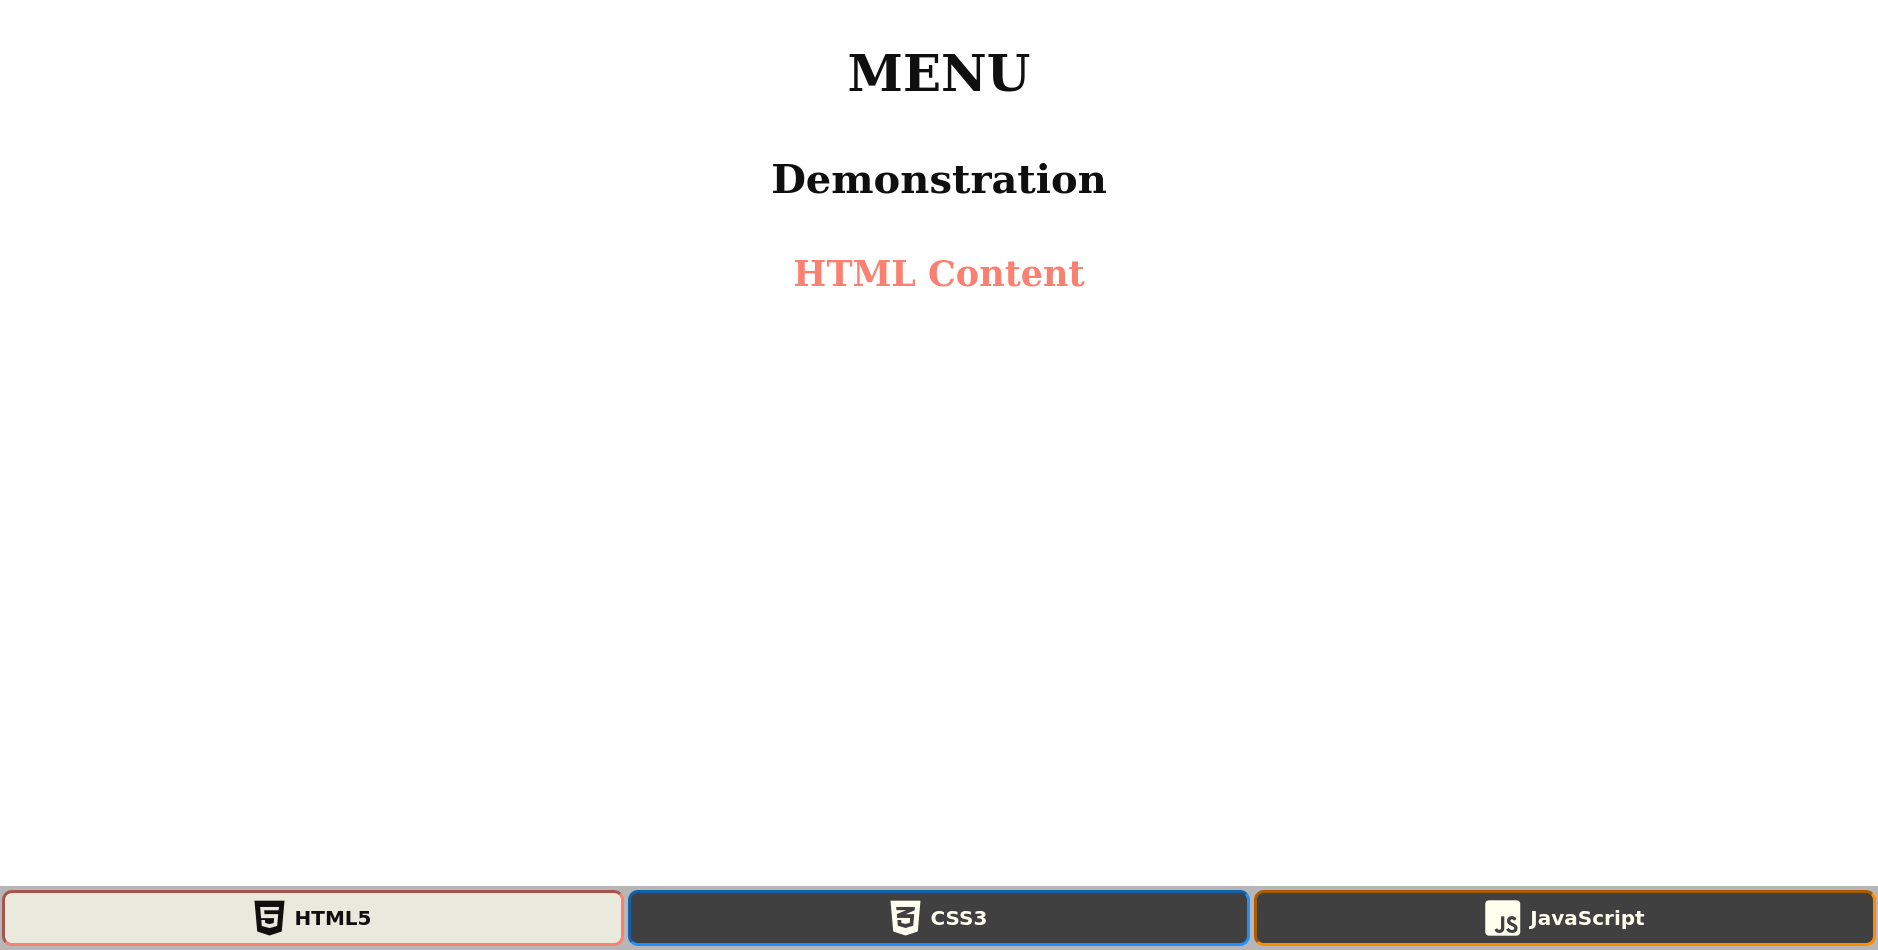 The Menu example